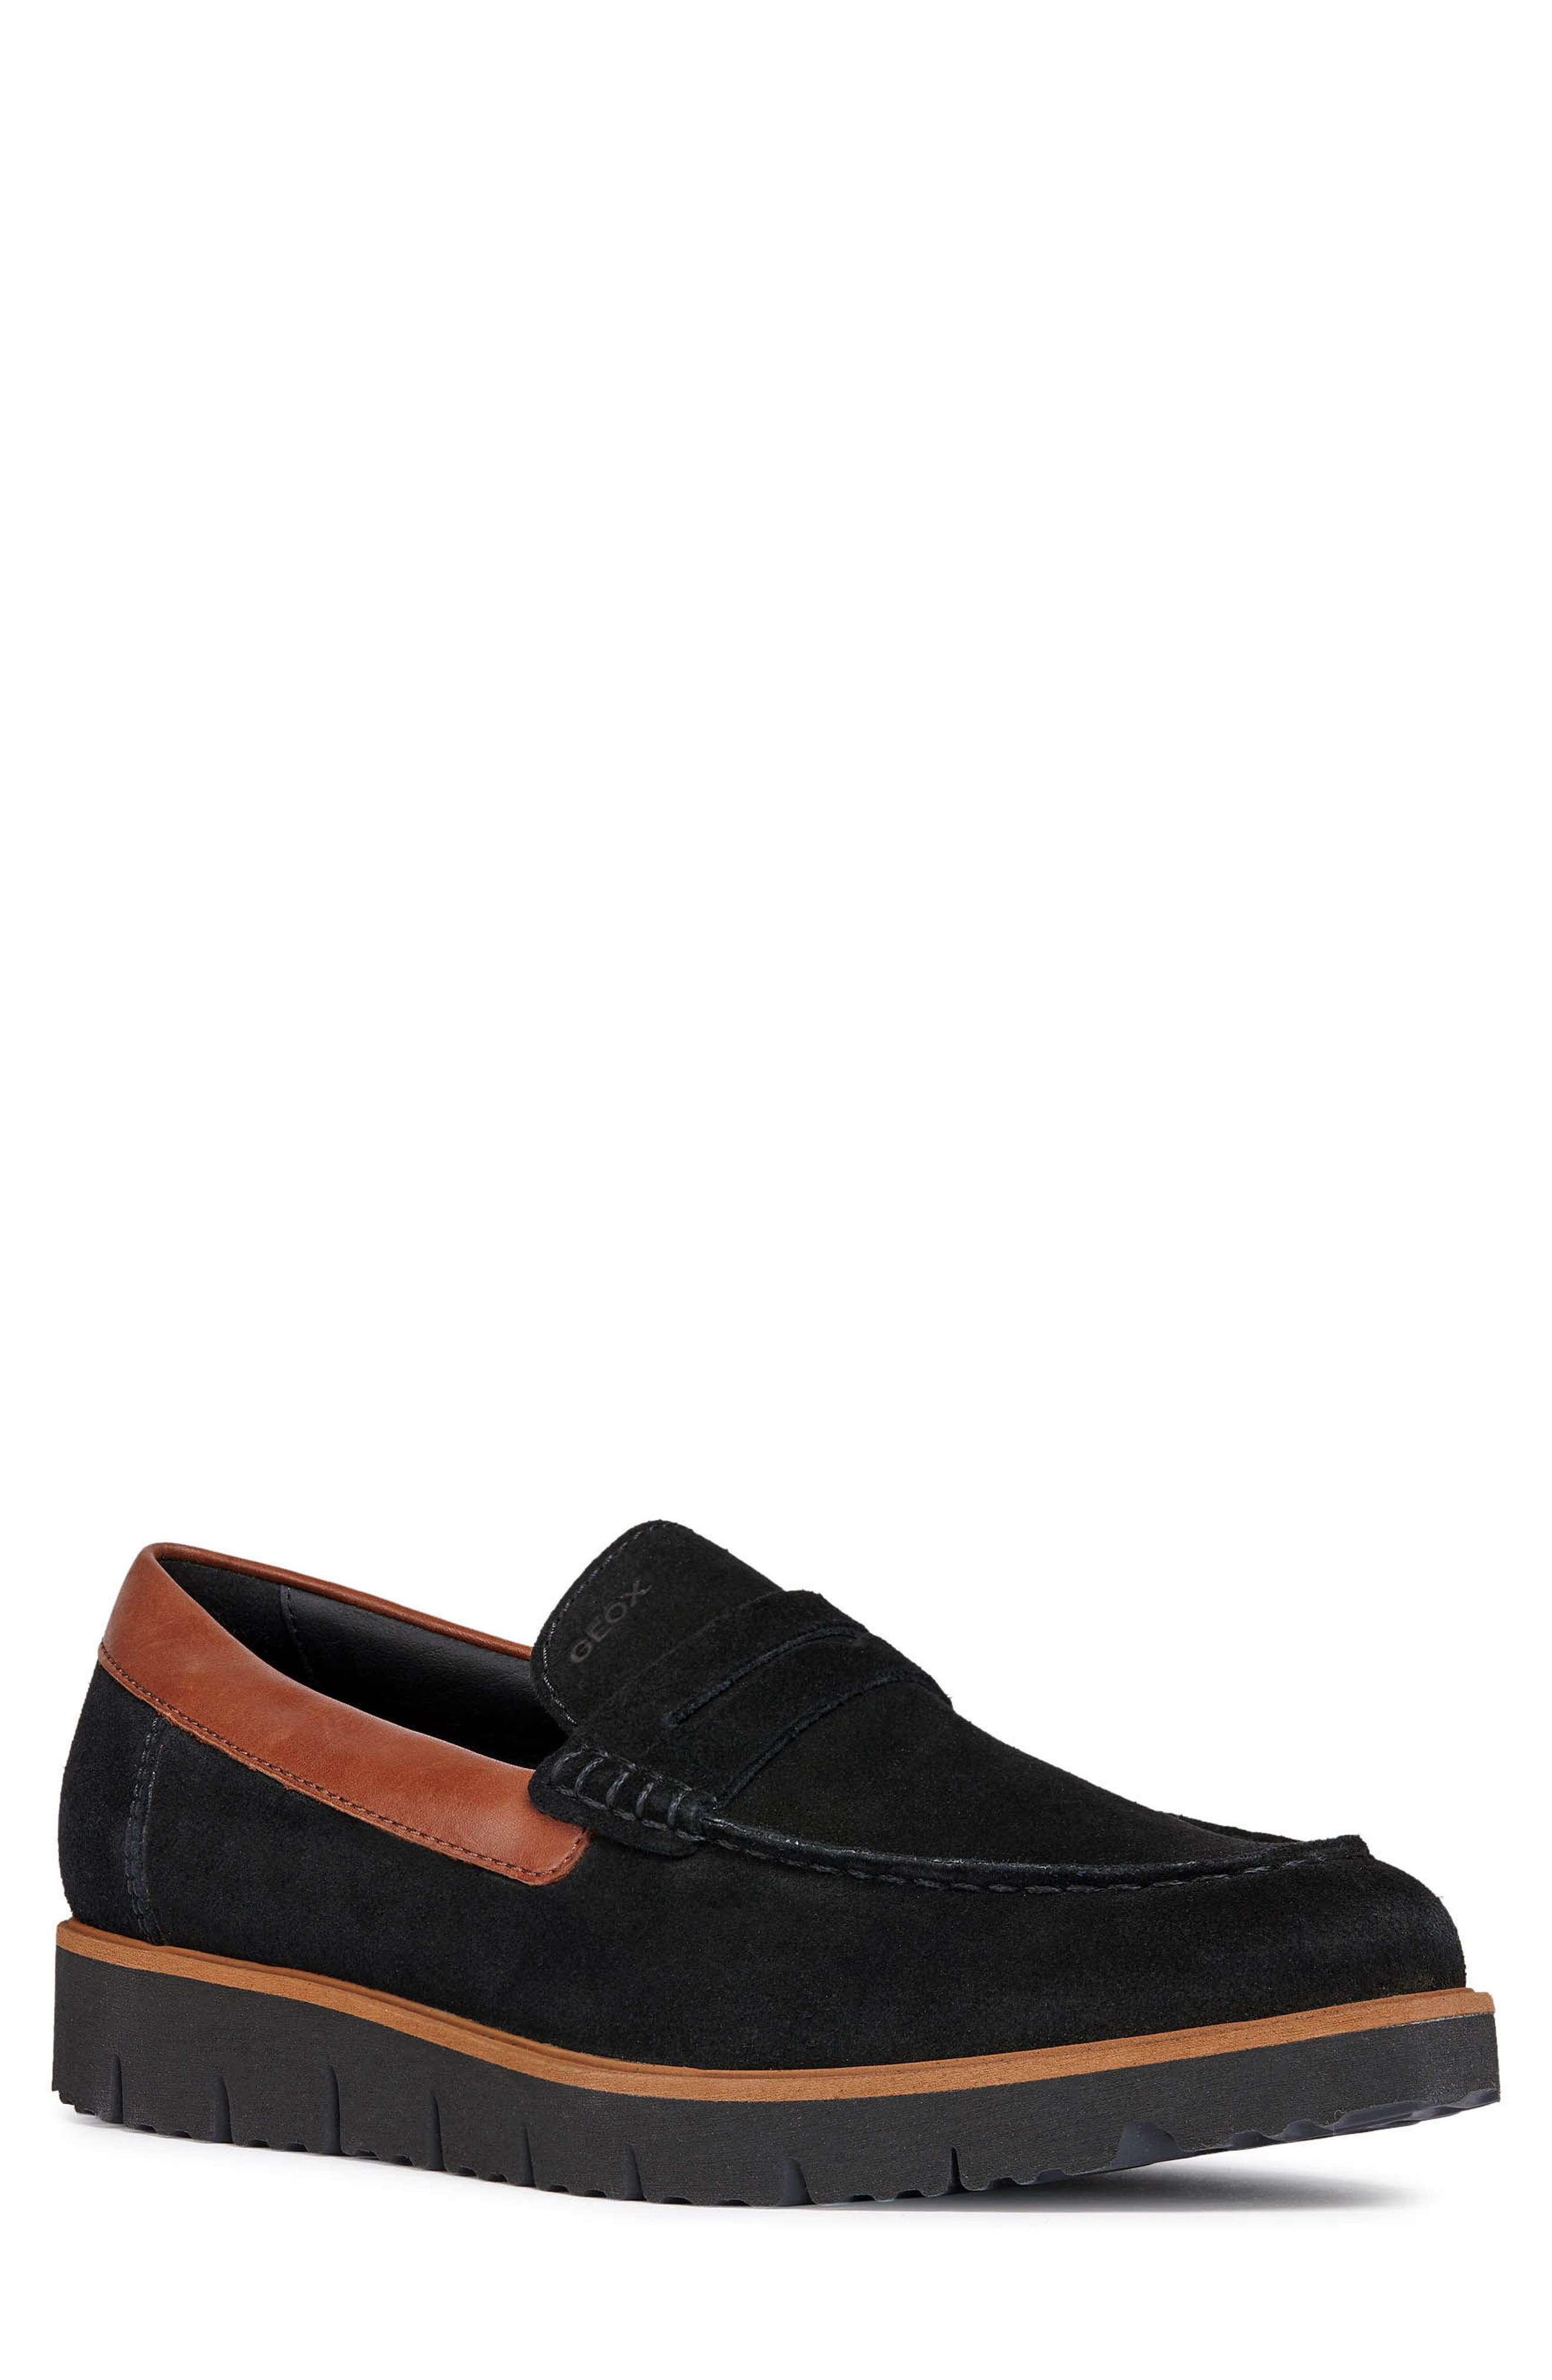 New Pluges 6 Penny Loafer,                         Main,                         color, 002